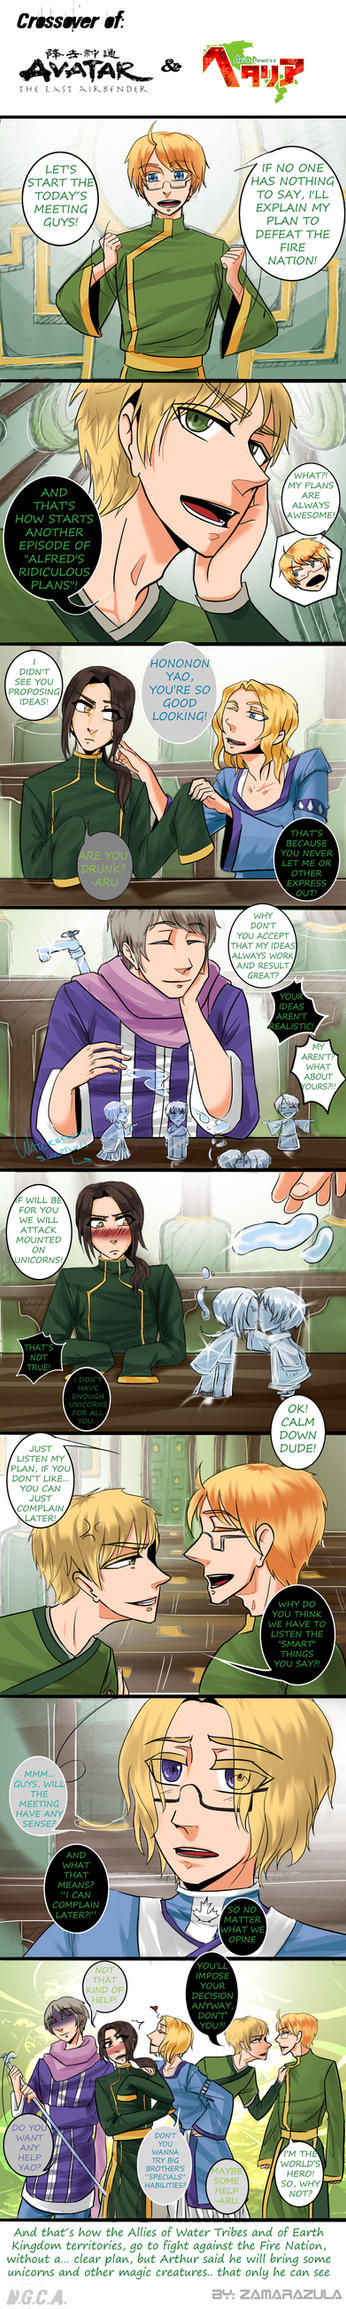 Hetalia + ATLA - Crossover -Part 4 by Zamarazula